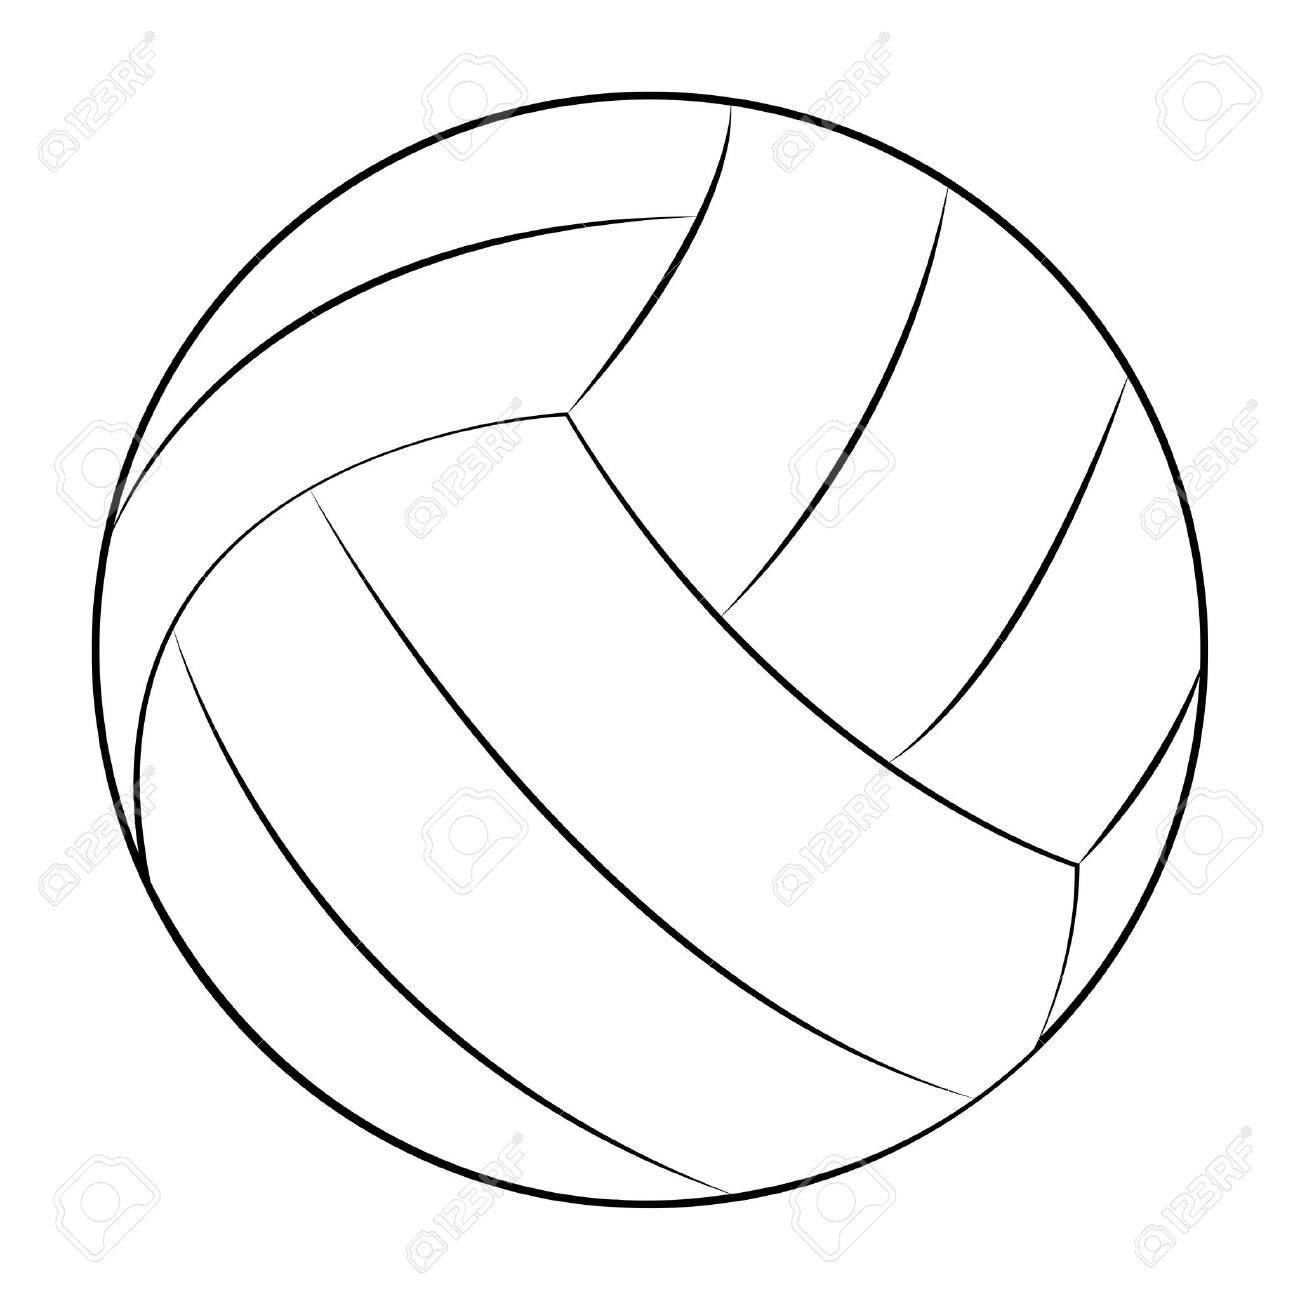 Volleyball outline clipart clip free Volleyball outline clipart 3 » Clipart Station clip free